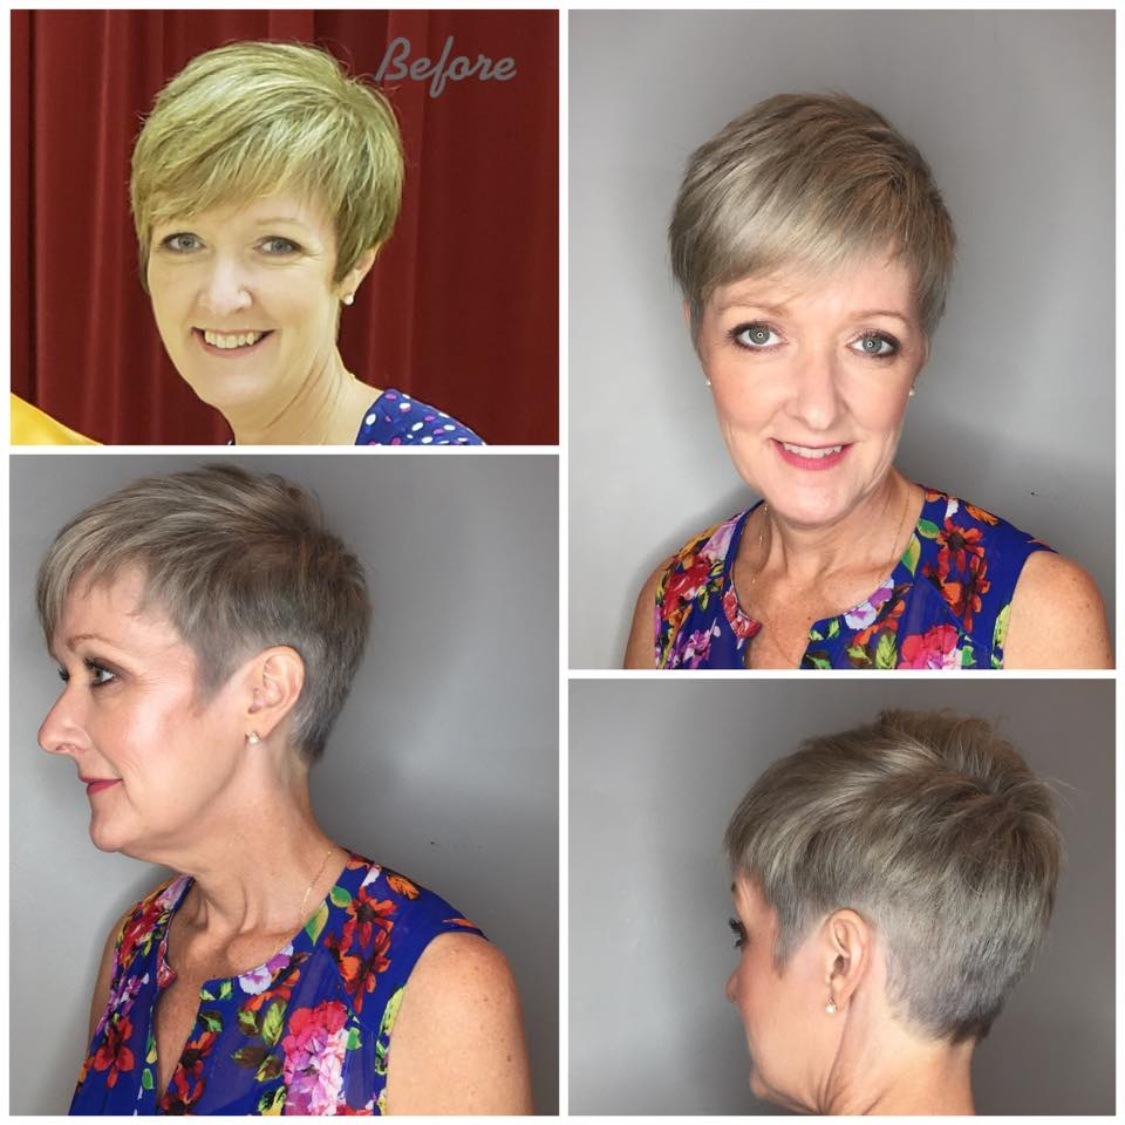 Rebecca Crosby Stylist Artistik Edge Hair Salon Lake Highlands Texas Pixie Cut.png